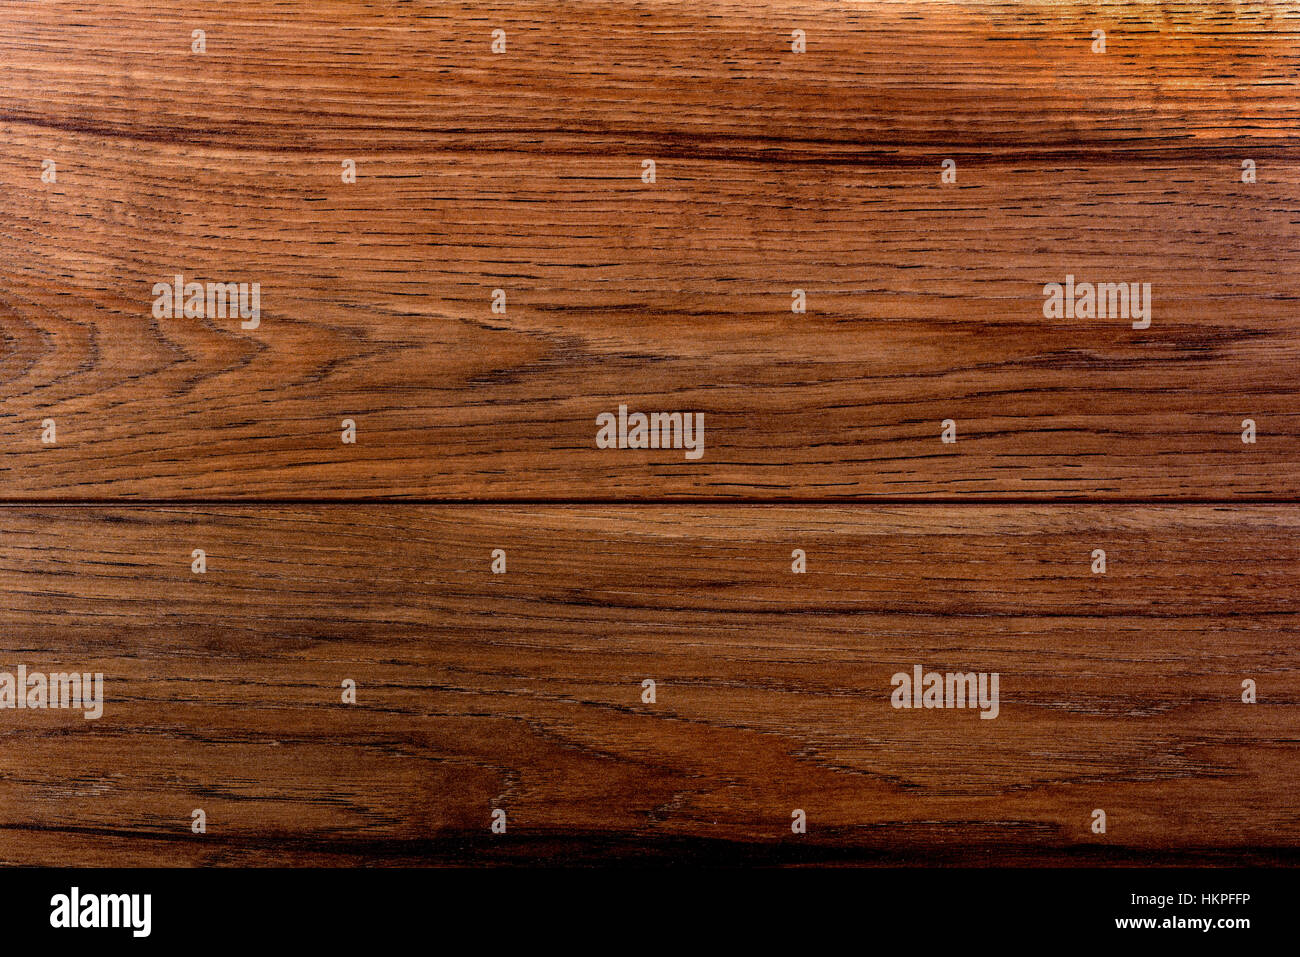 Close up detail of wooden laminate flooring. - Stock Image